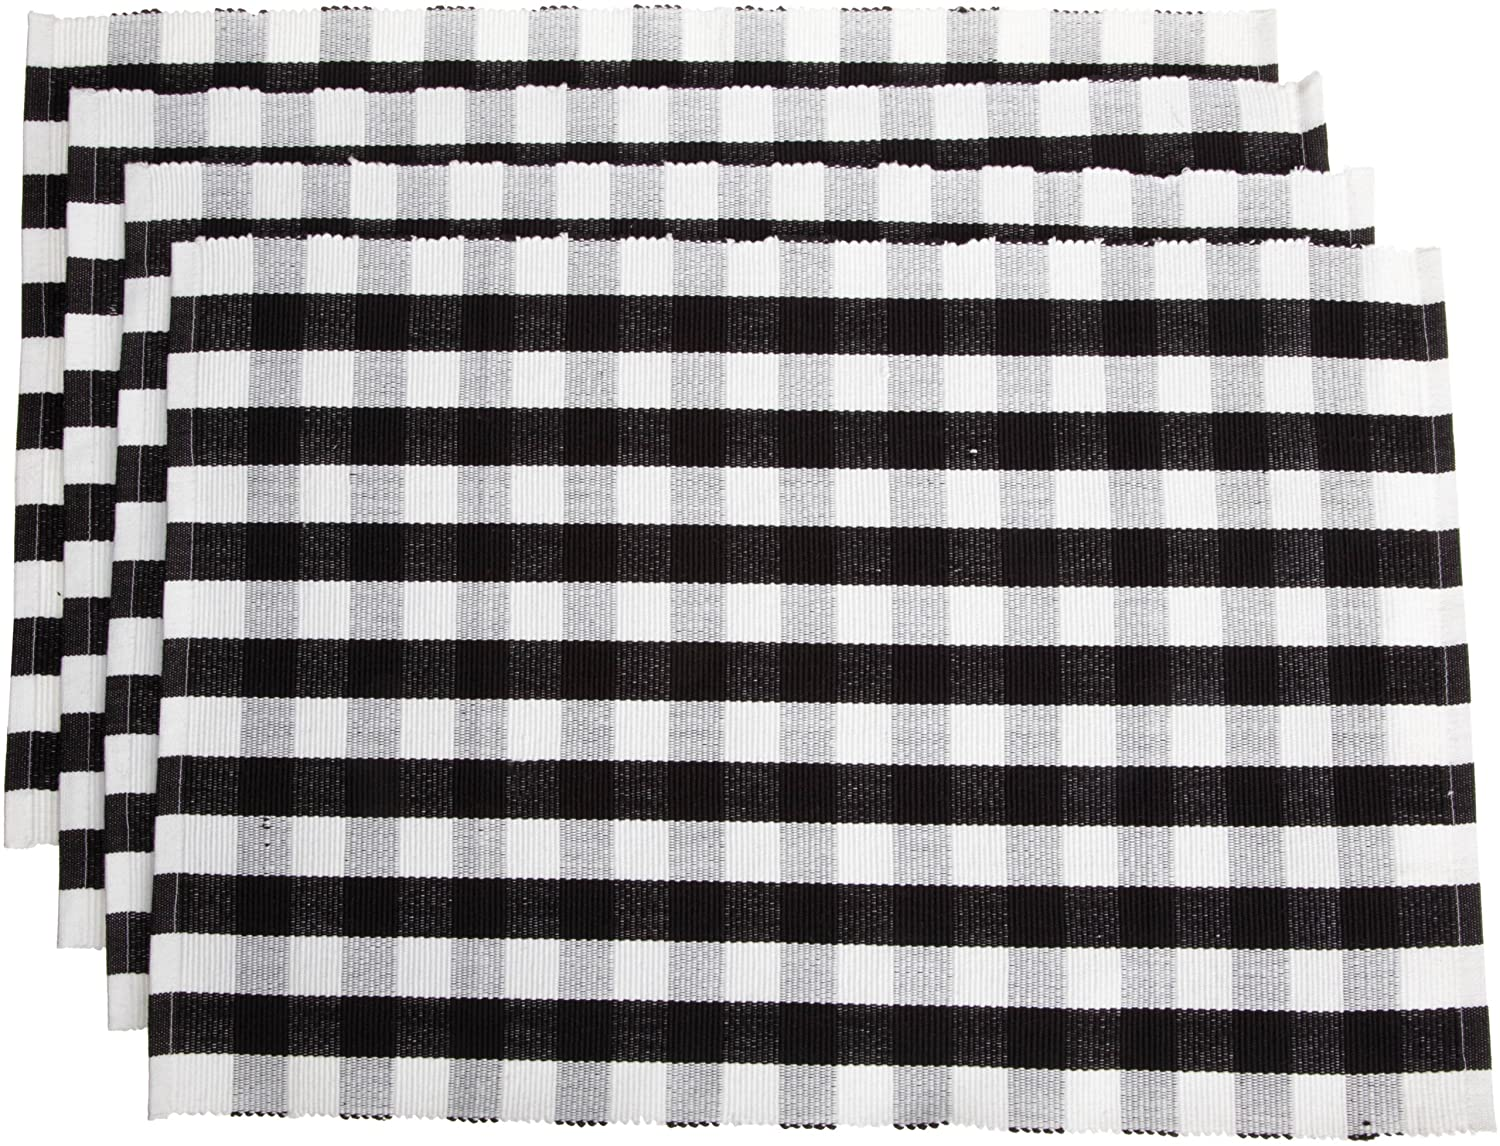 Set of 4 T301BKRP Black and White Mahogany Small Check 100-Percent Cotton 13-Inch By 19-Inch Euro Ribbed Placemat